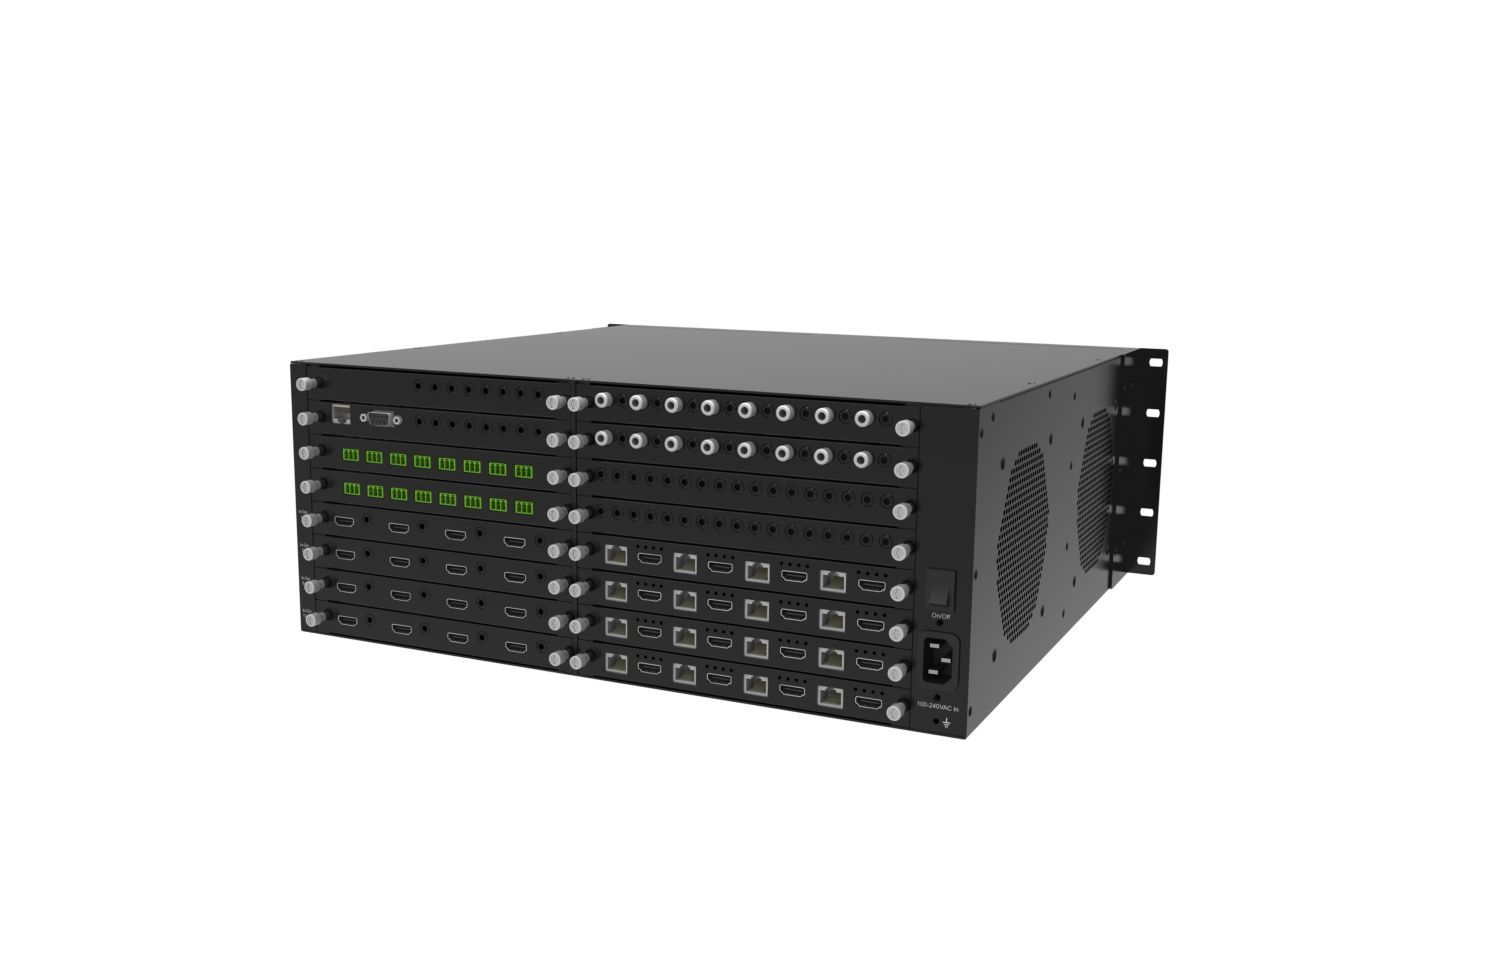 4K 60 16x16x2 HDMI Video Matrix Switcher over HDBaseT CAT5